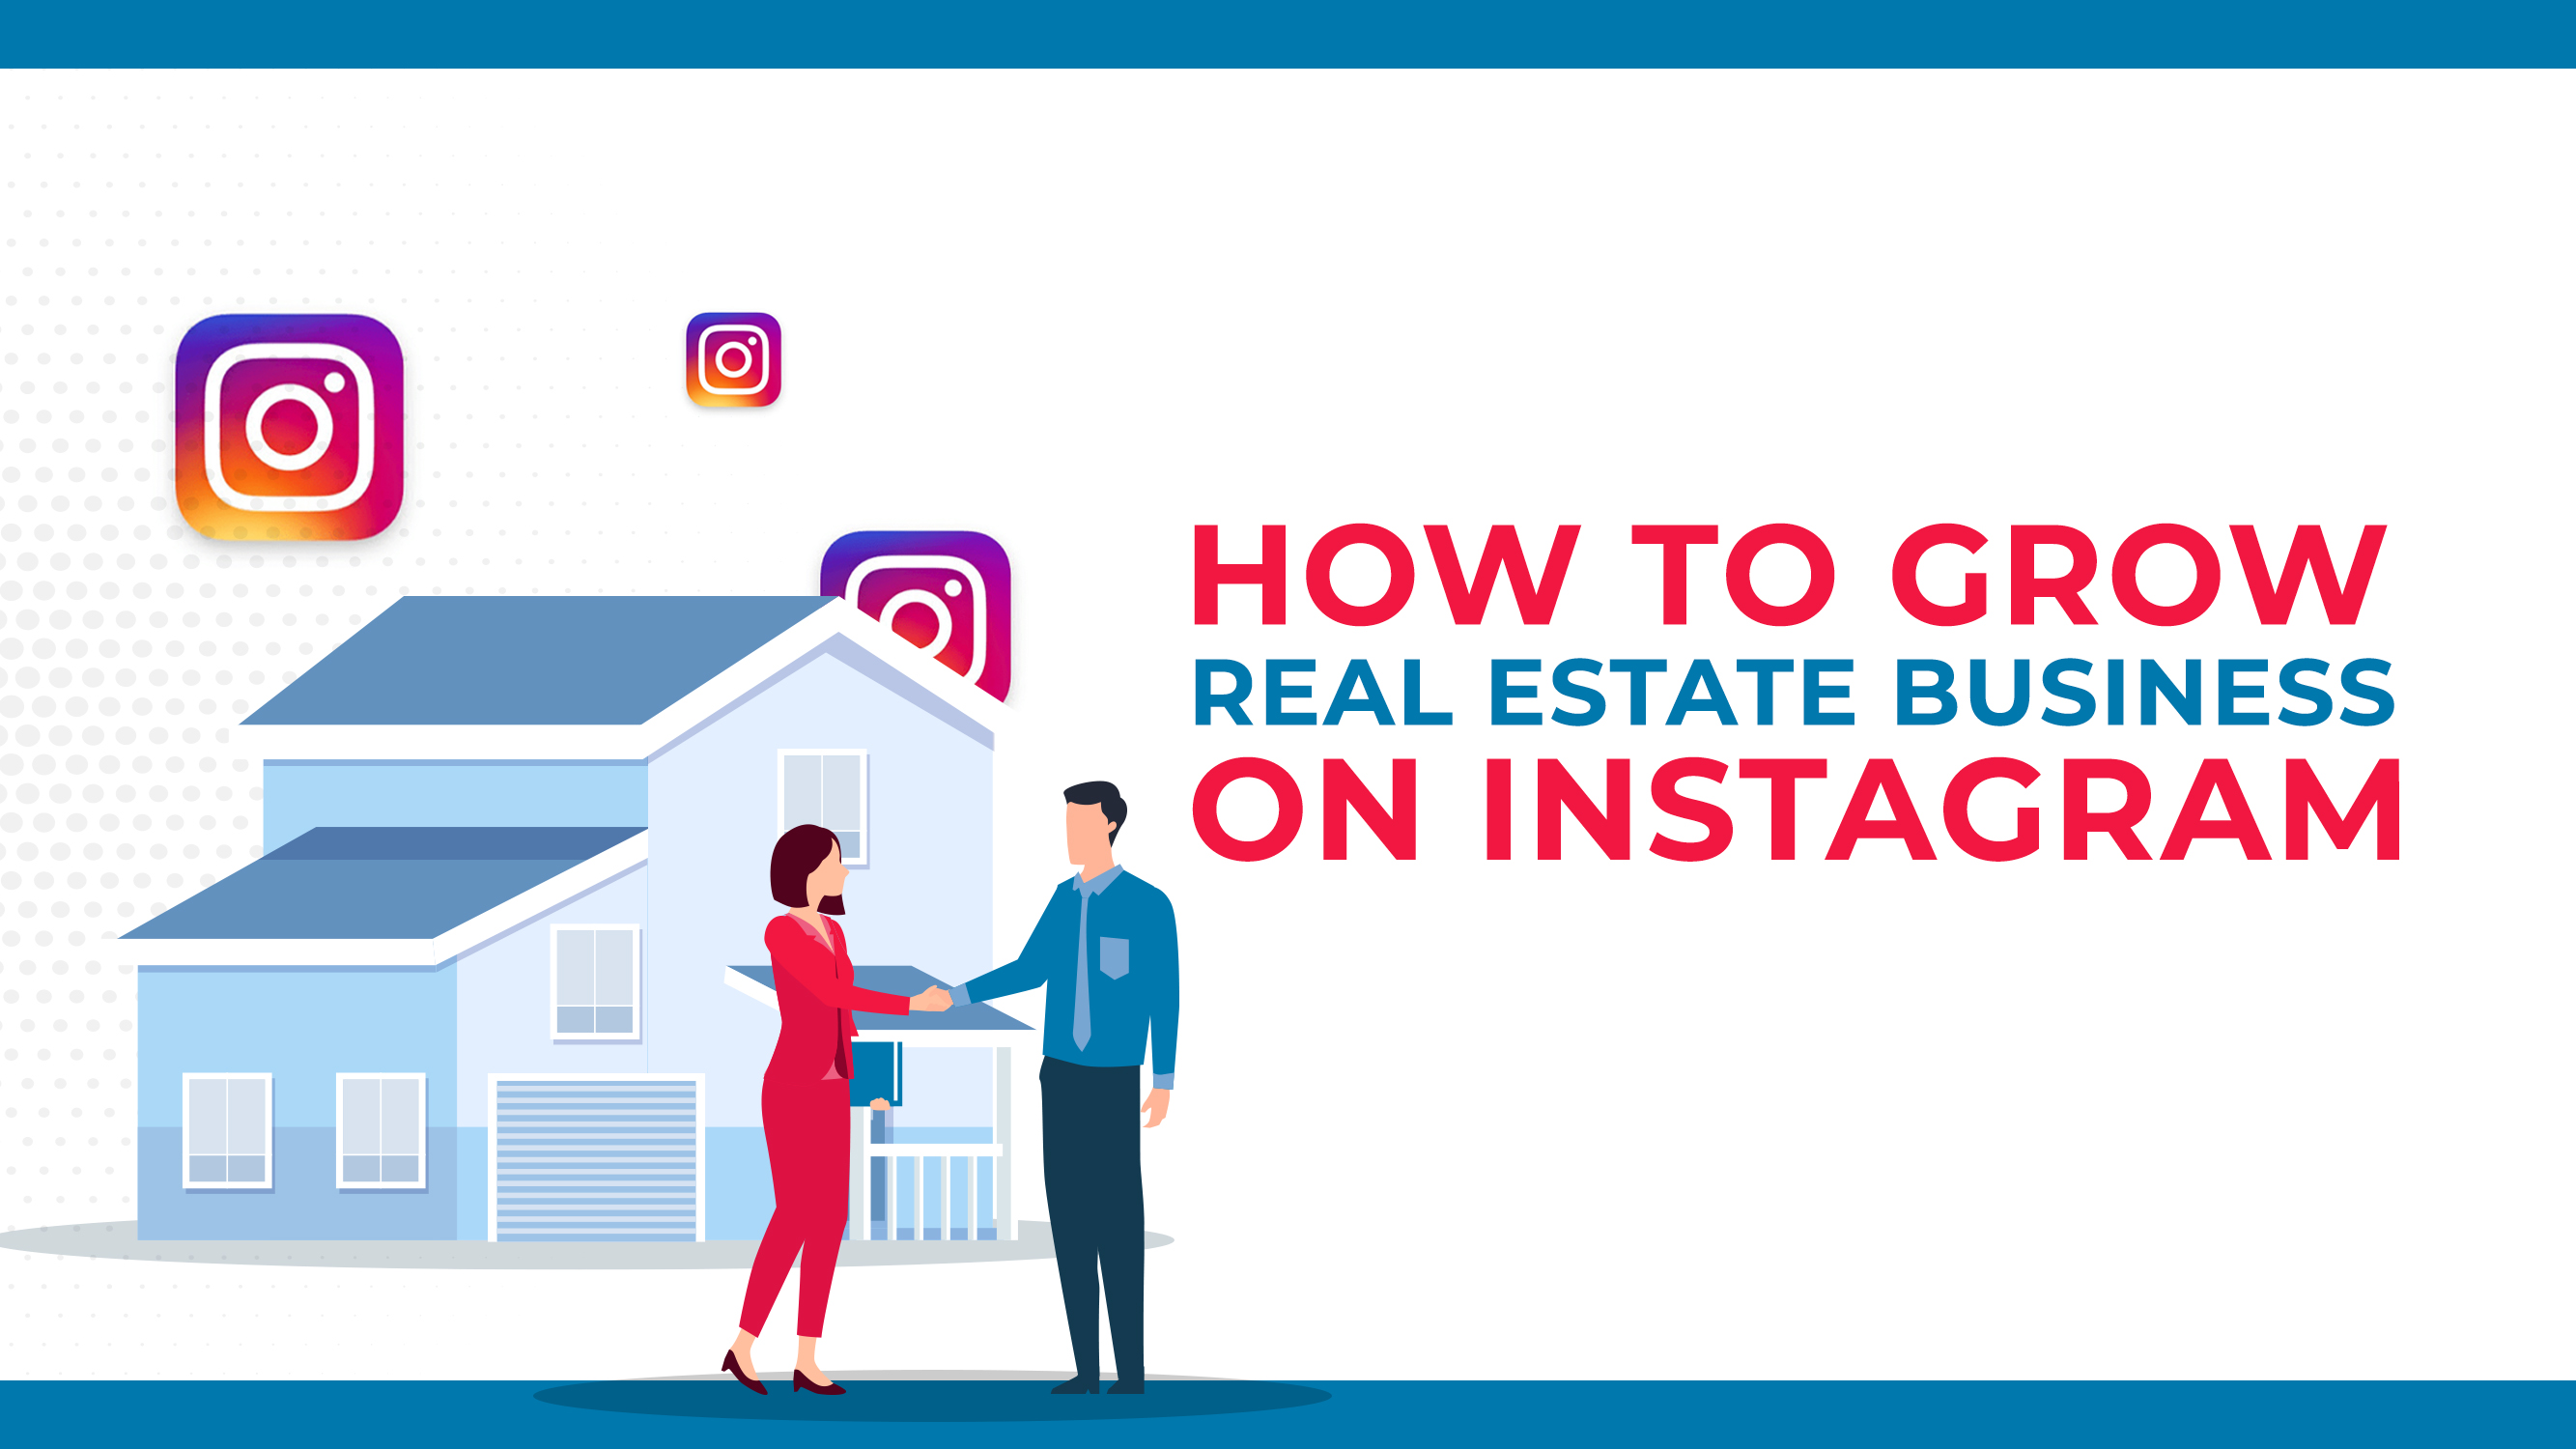 Come far crescere il vostro business immobiliare su Instagram